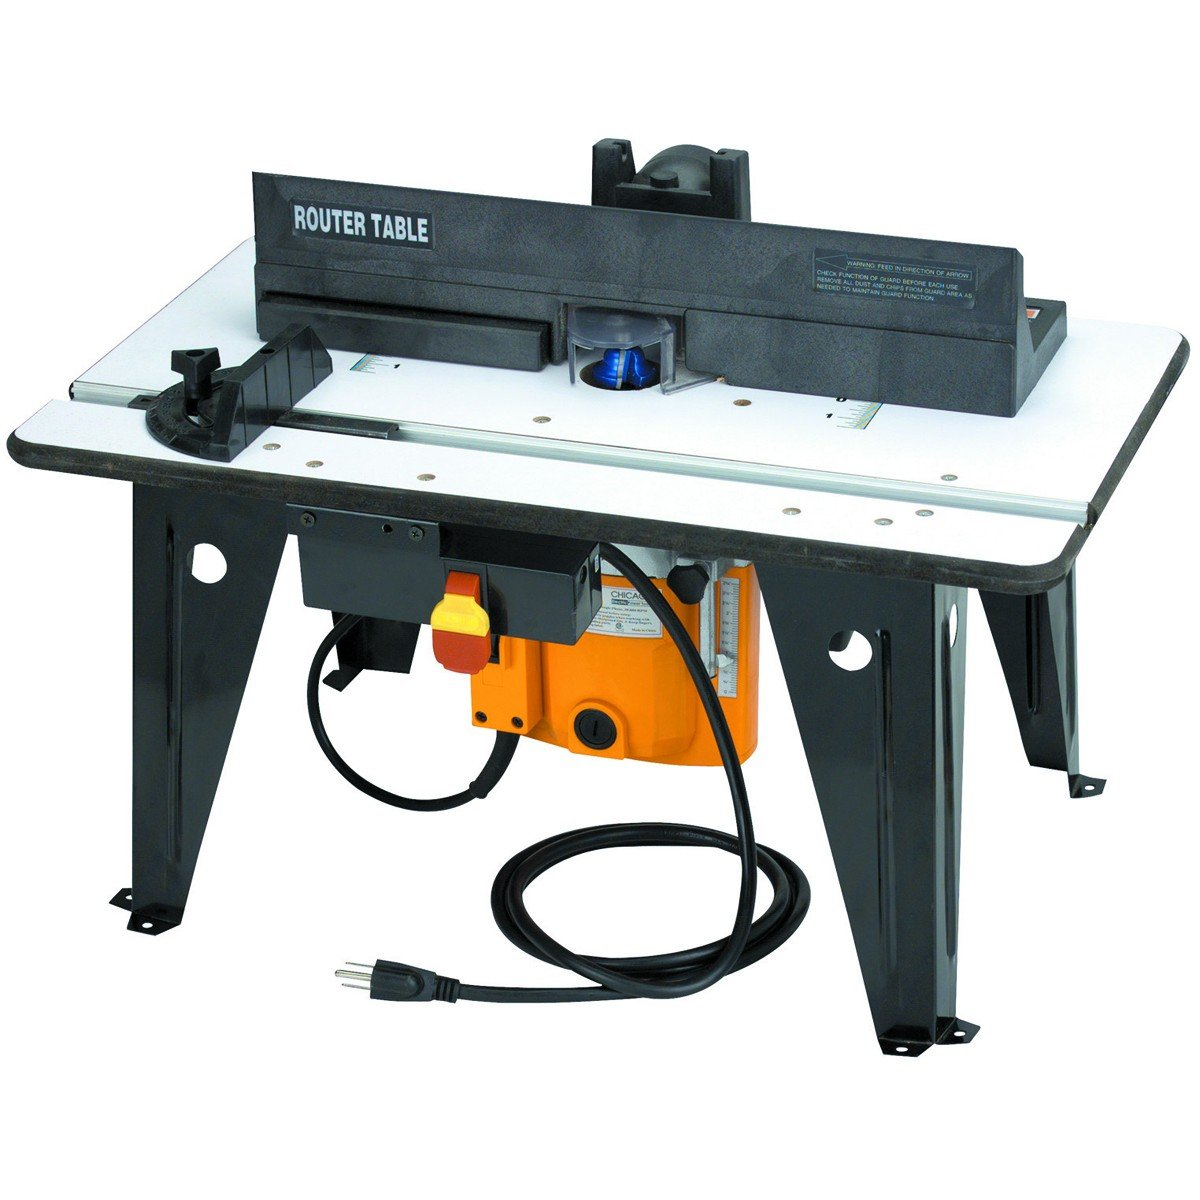 Benchtop router table with 1 34 hp router amazon greentooth Gallery